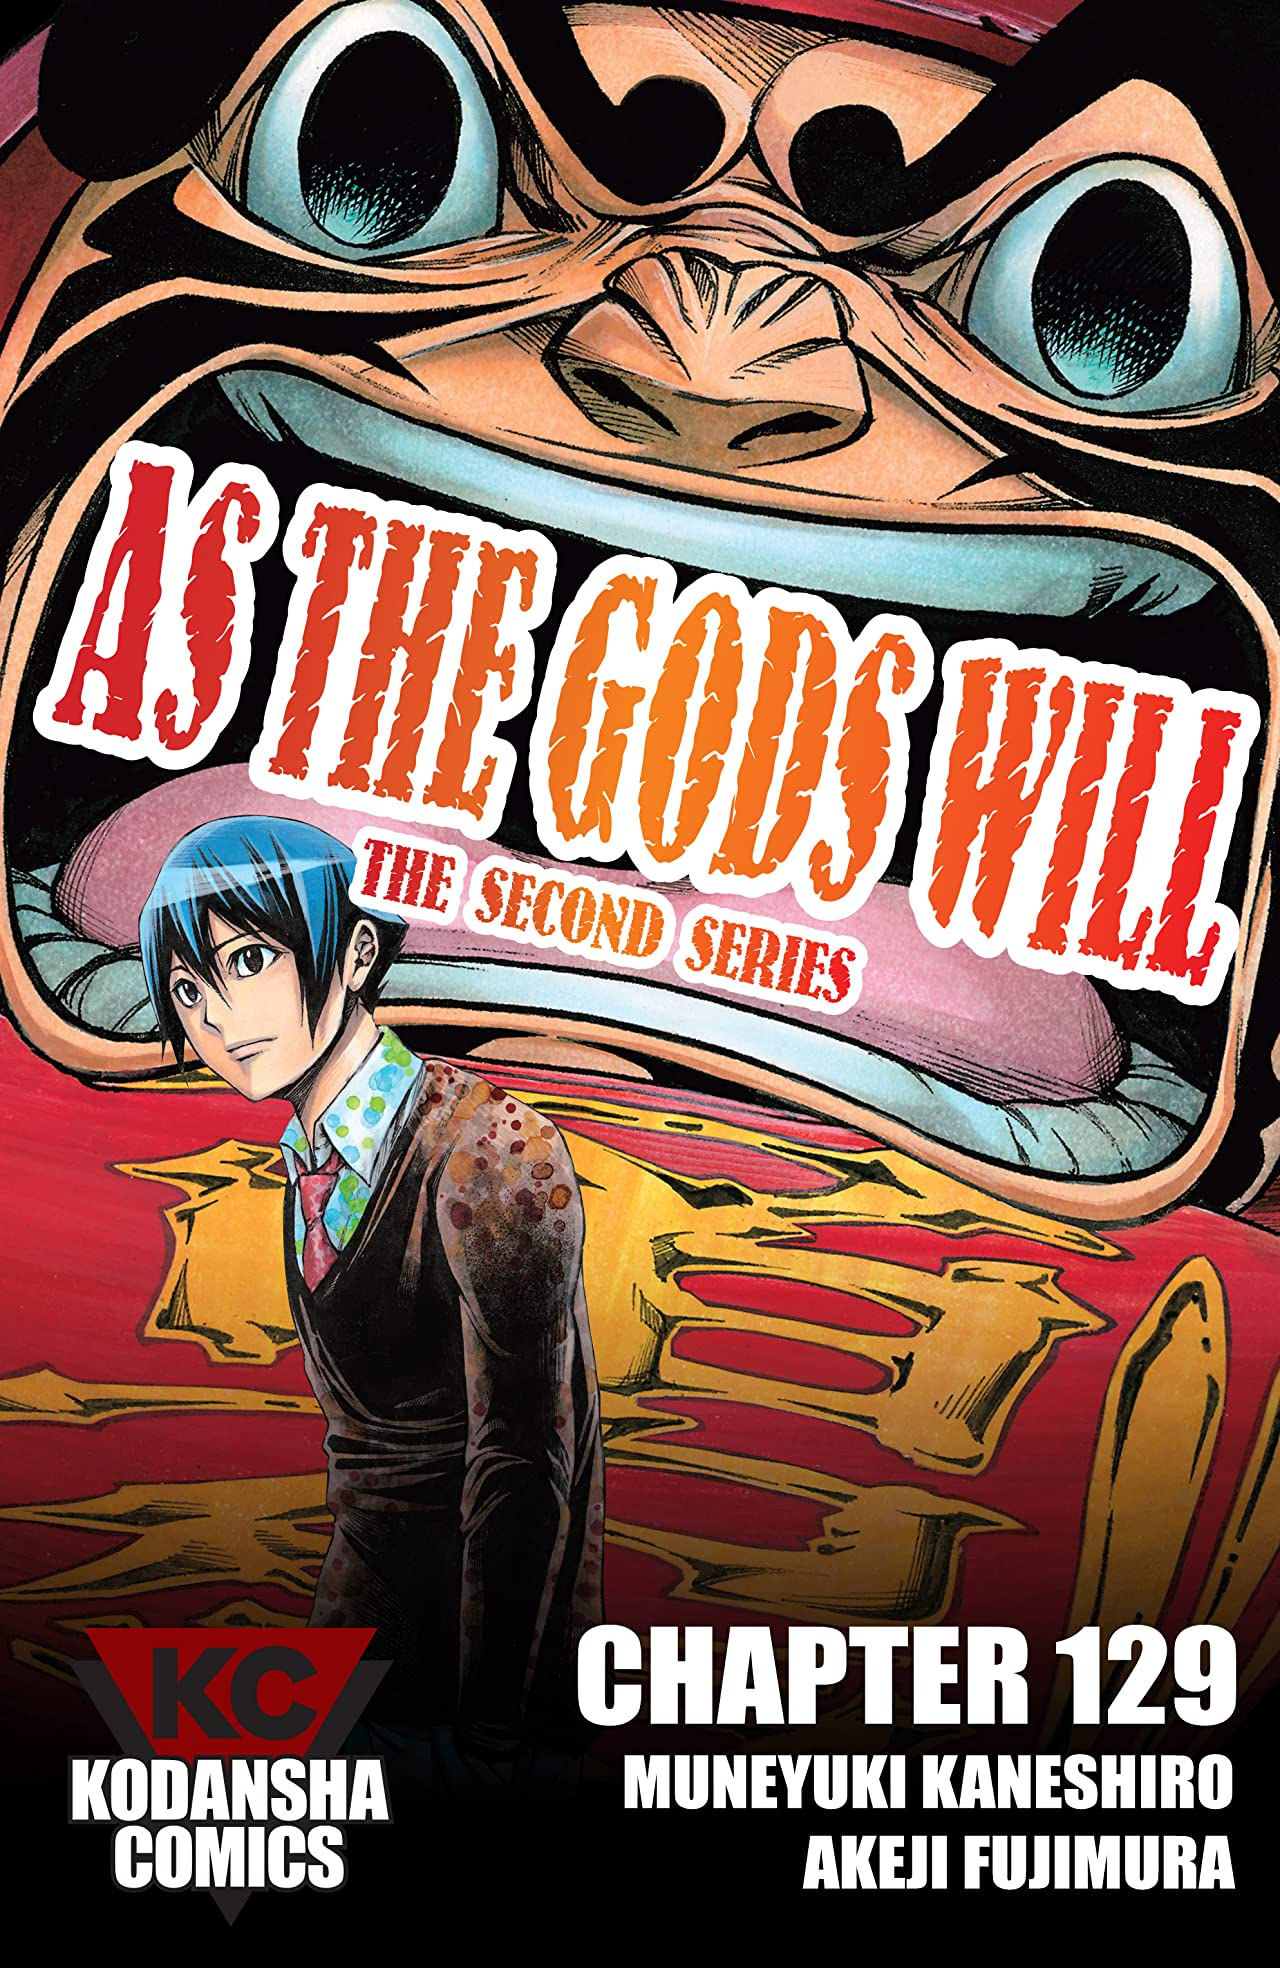 As The Gods Will: The Second Series #129